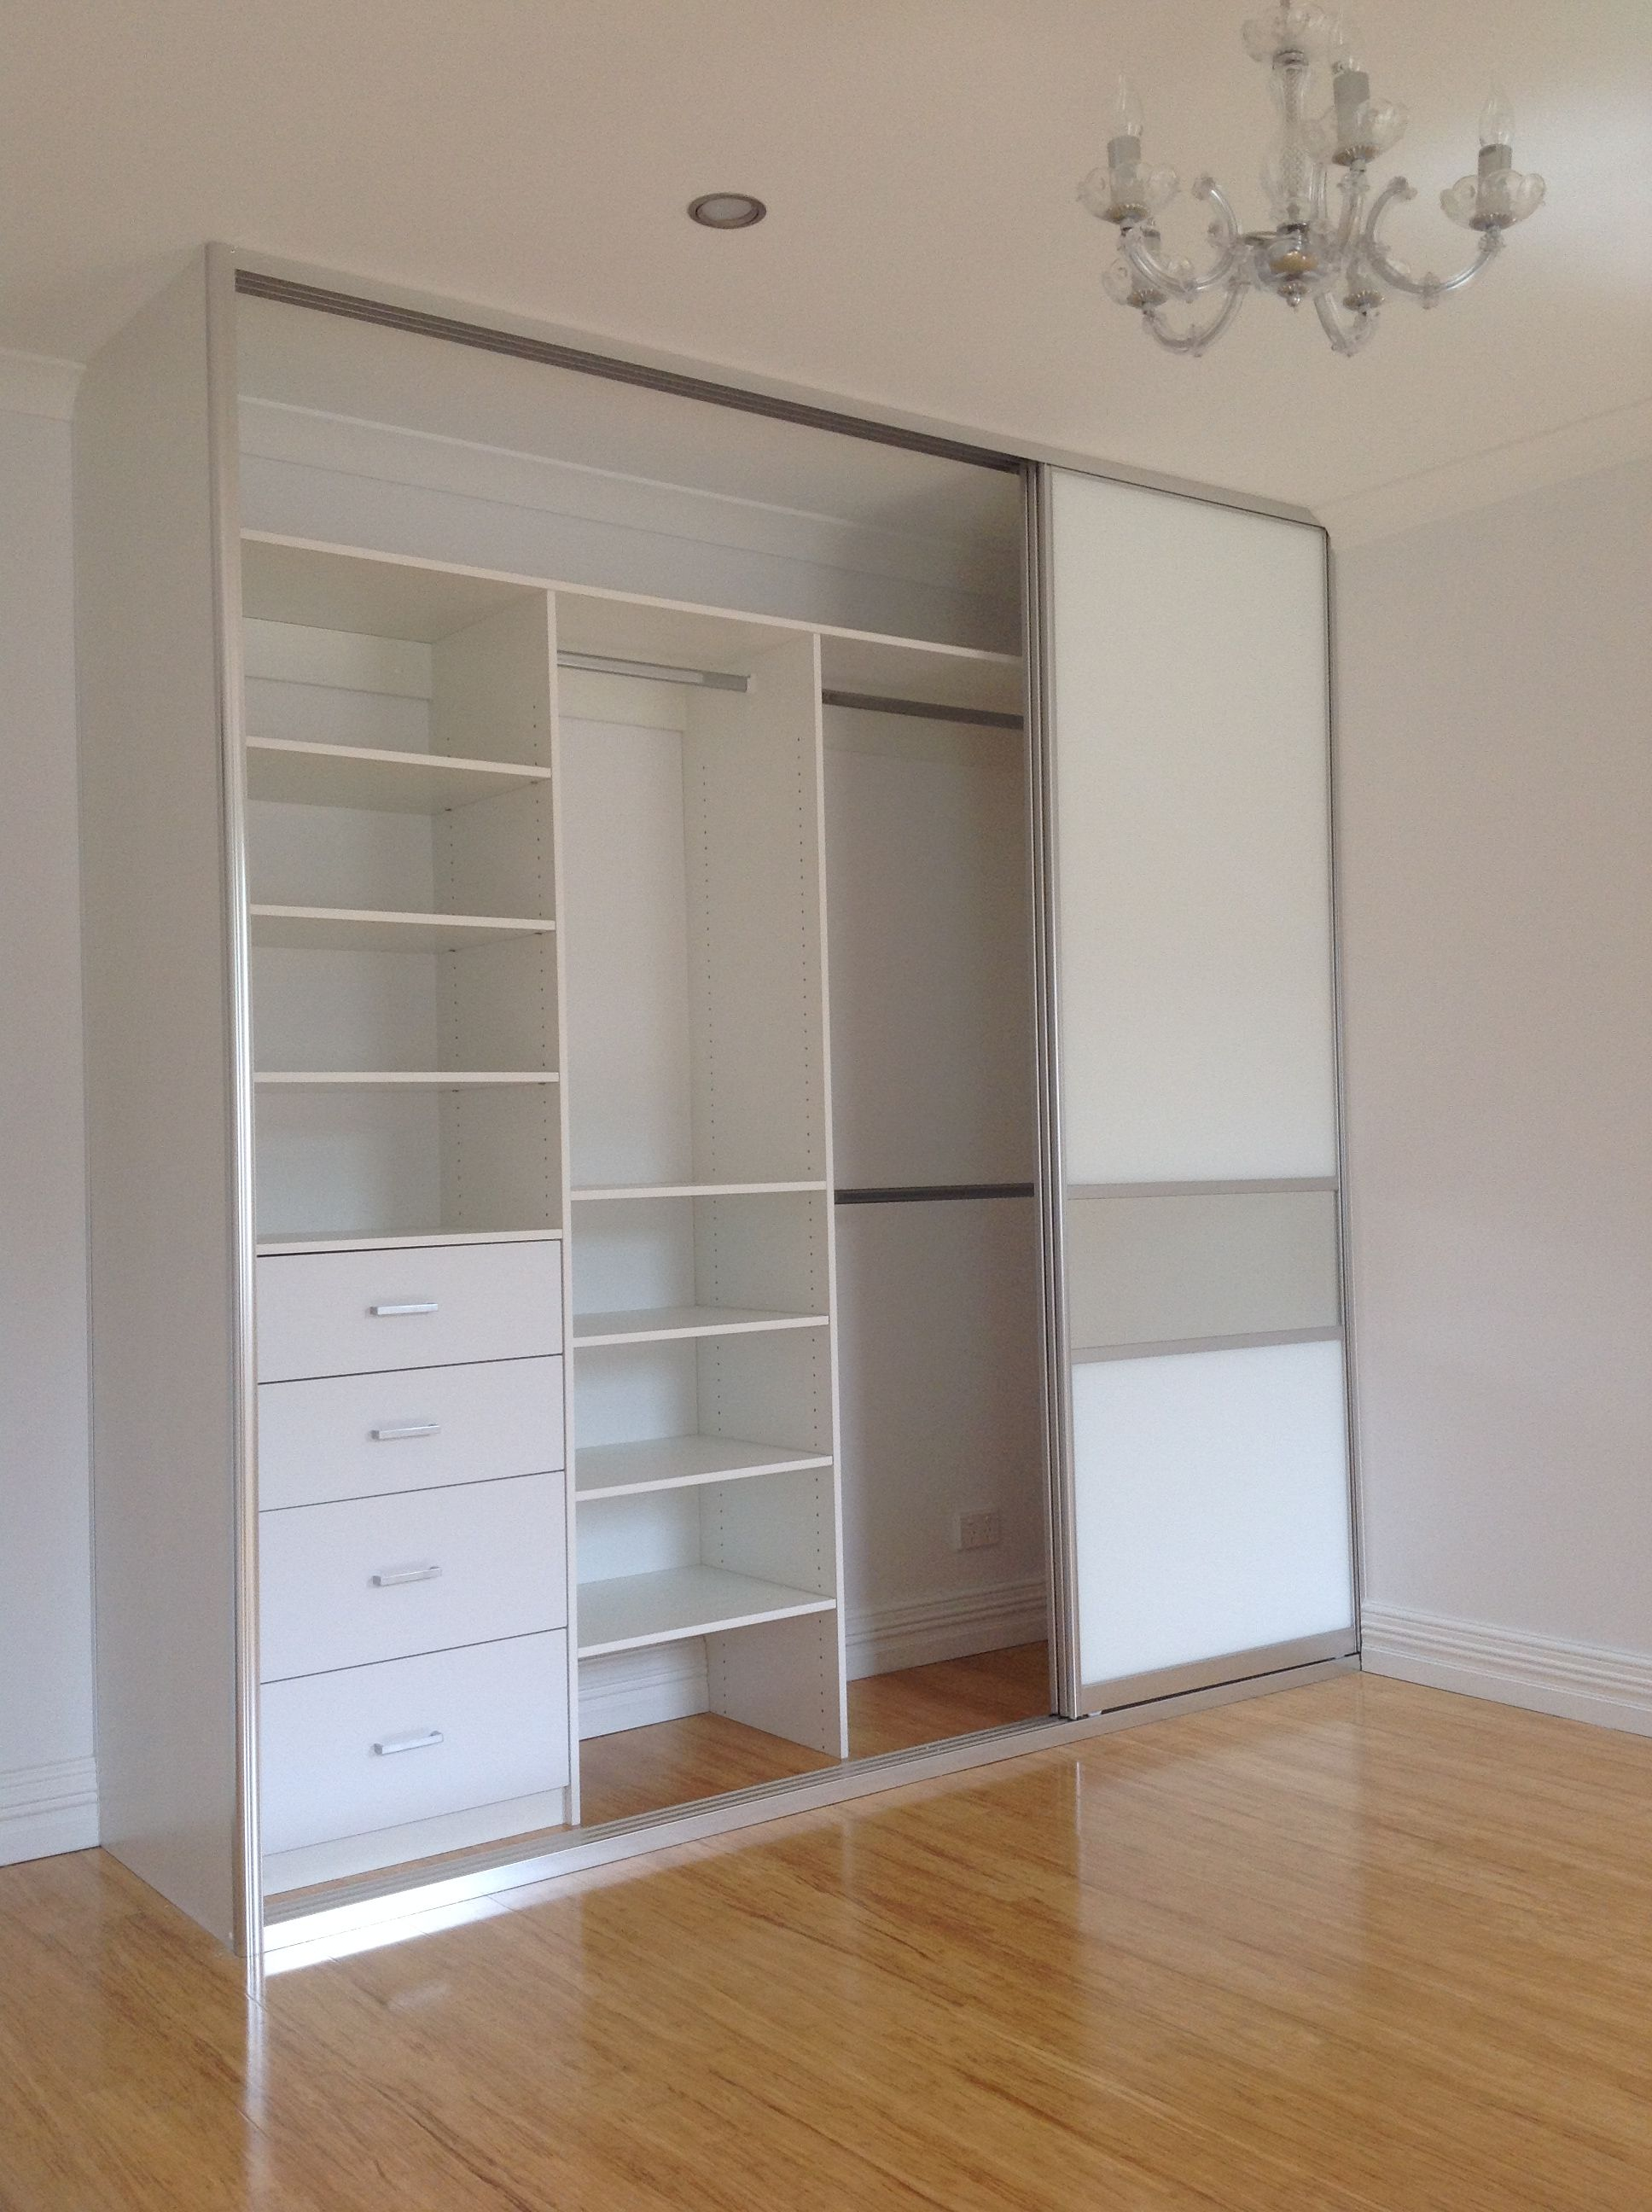 Please View Through Our Gallery Of Built In Wardrobe